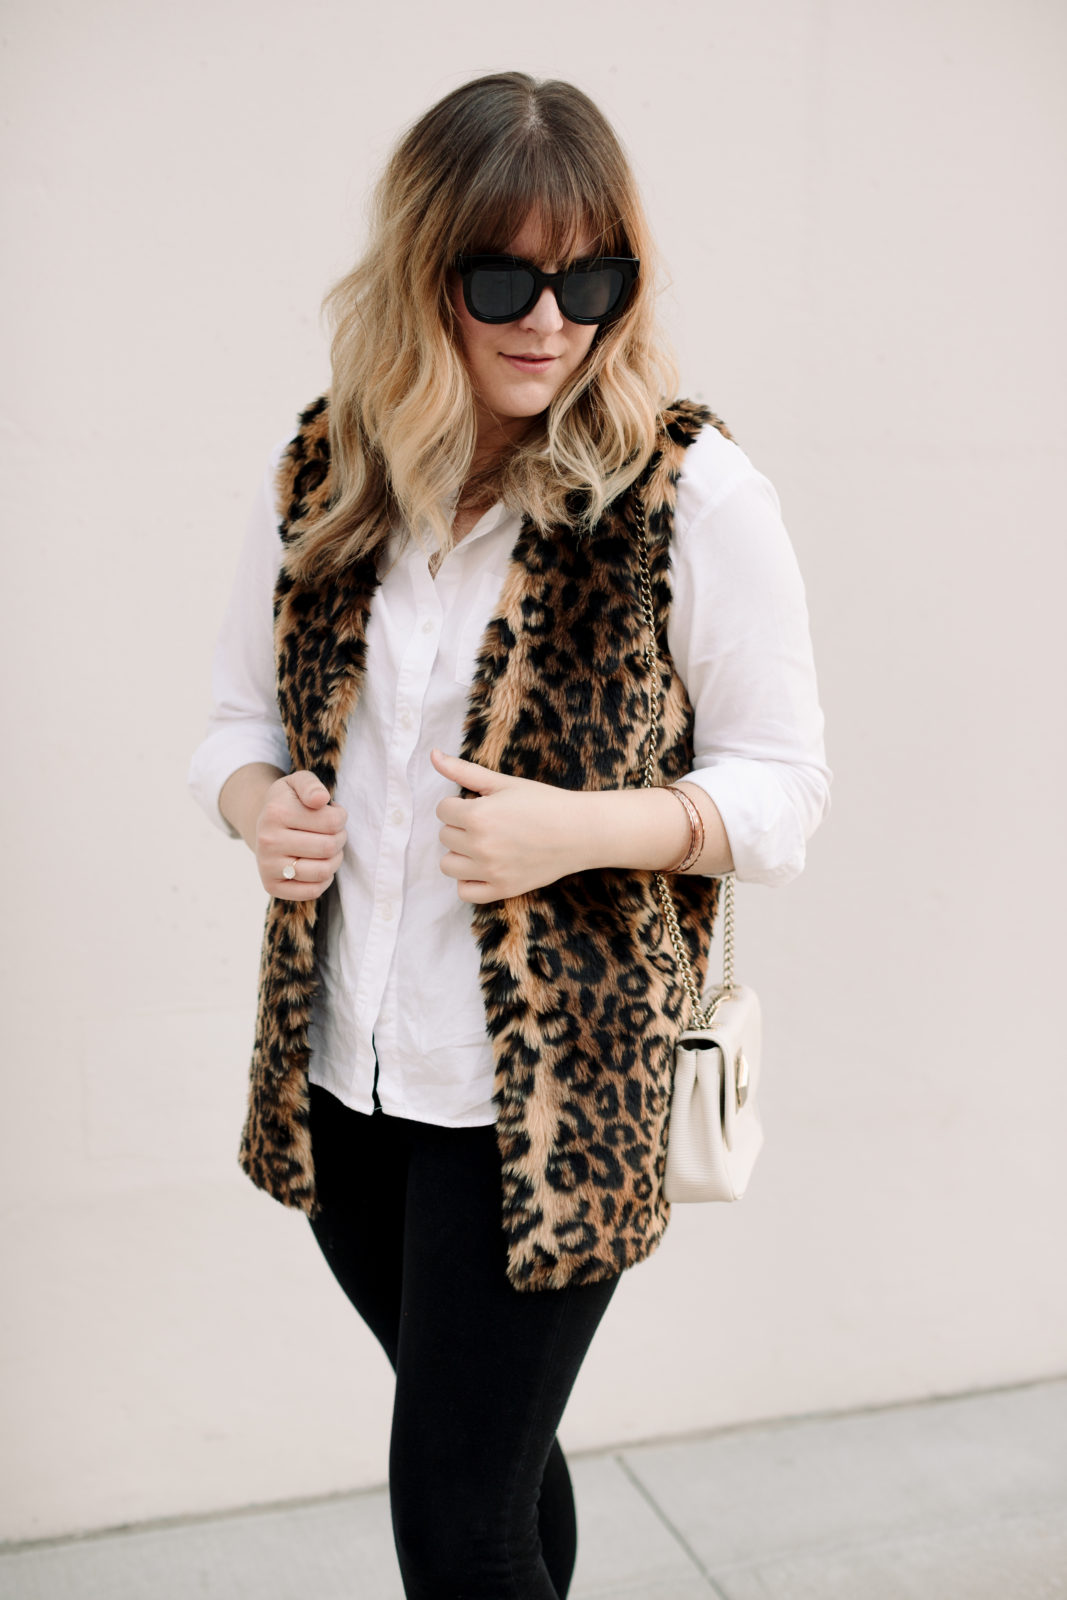 leopard is a neutral